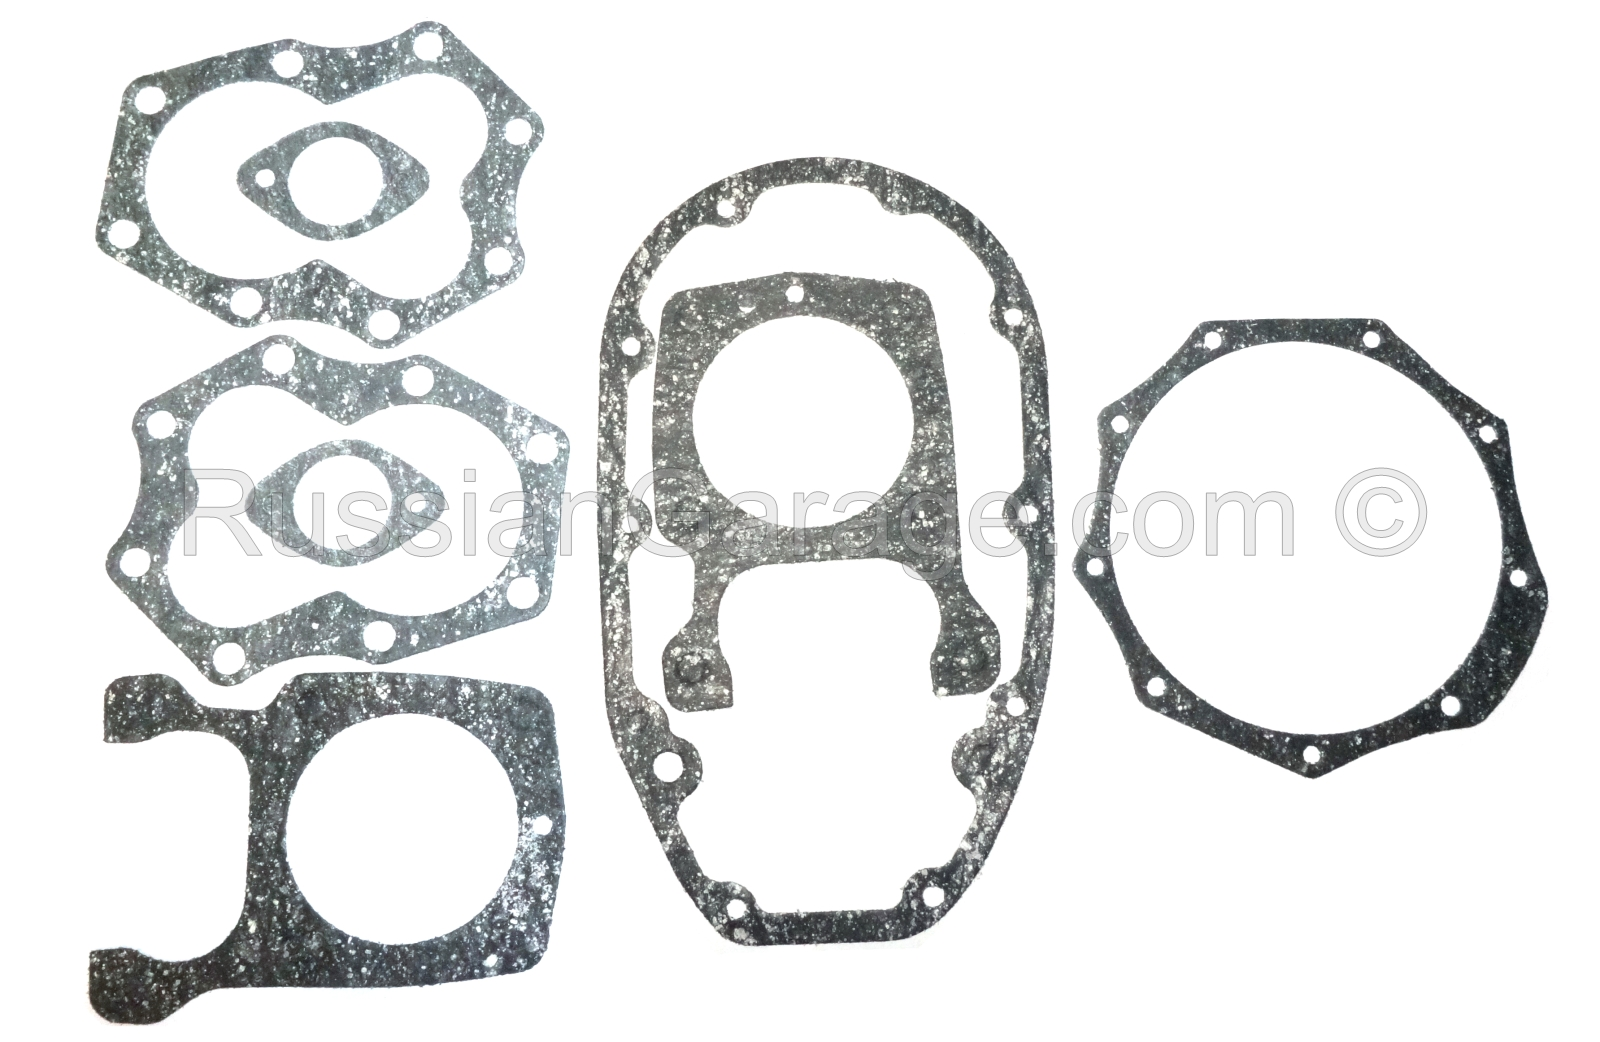 Kit of paronite gaskets for engine repair K-750 UR...